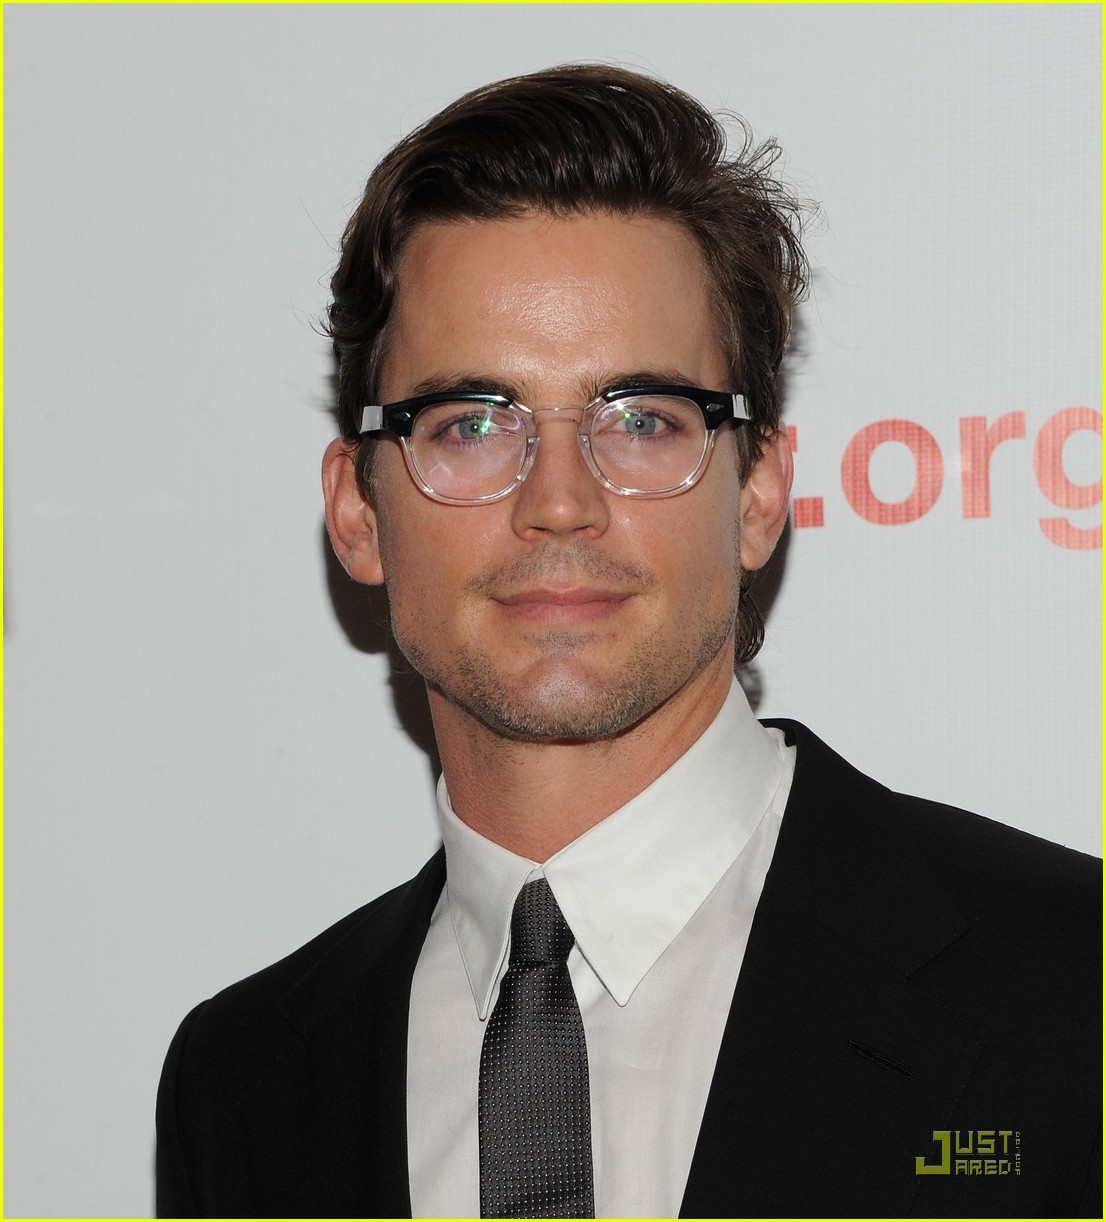 Related Pictures From Justjared Matt Bomer Funny Jpg